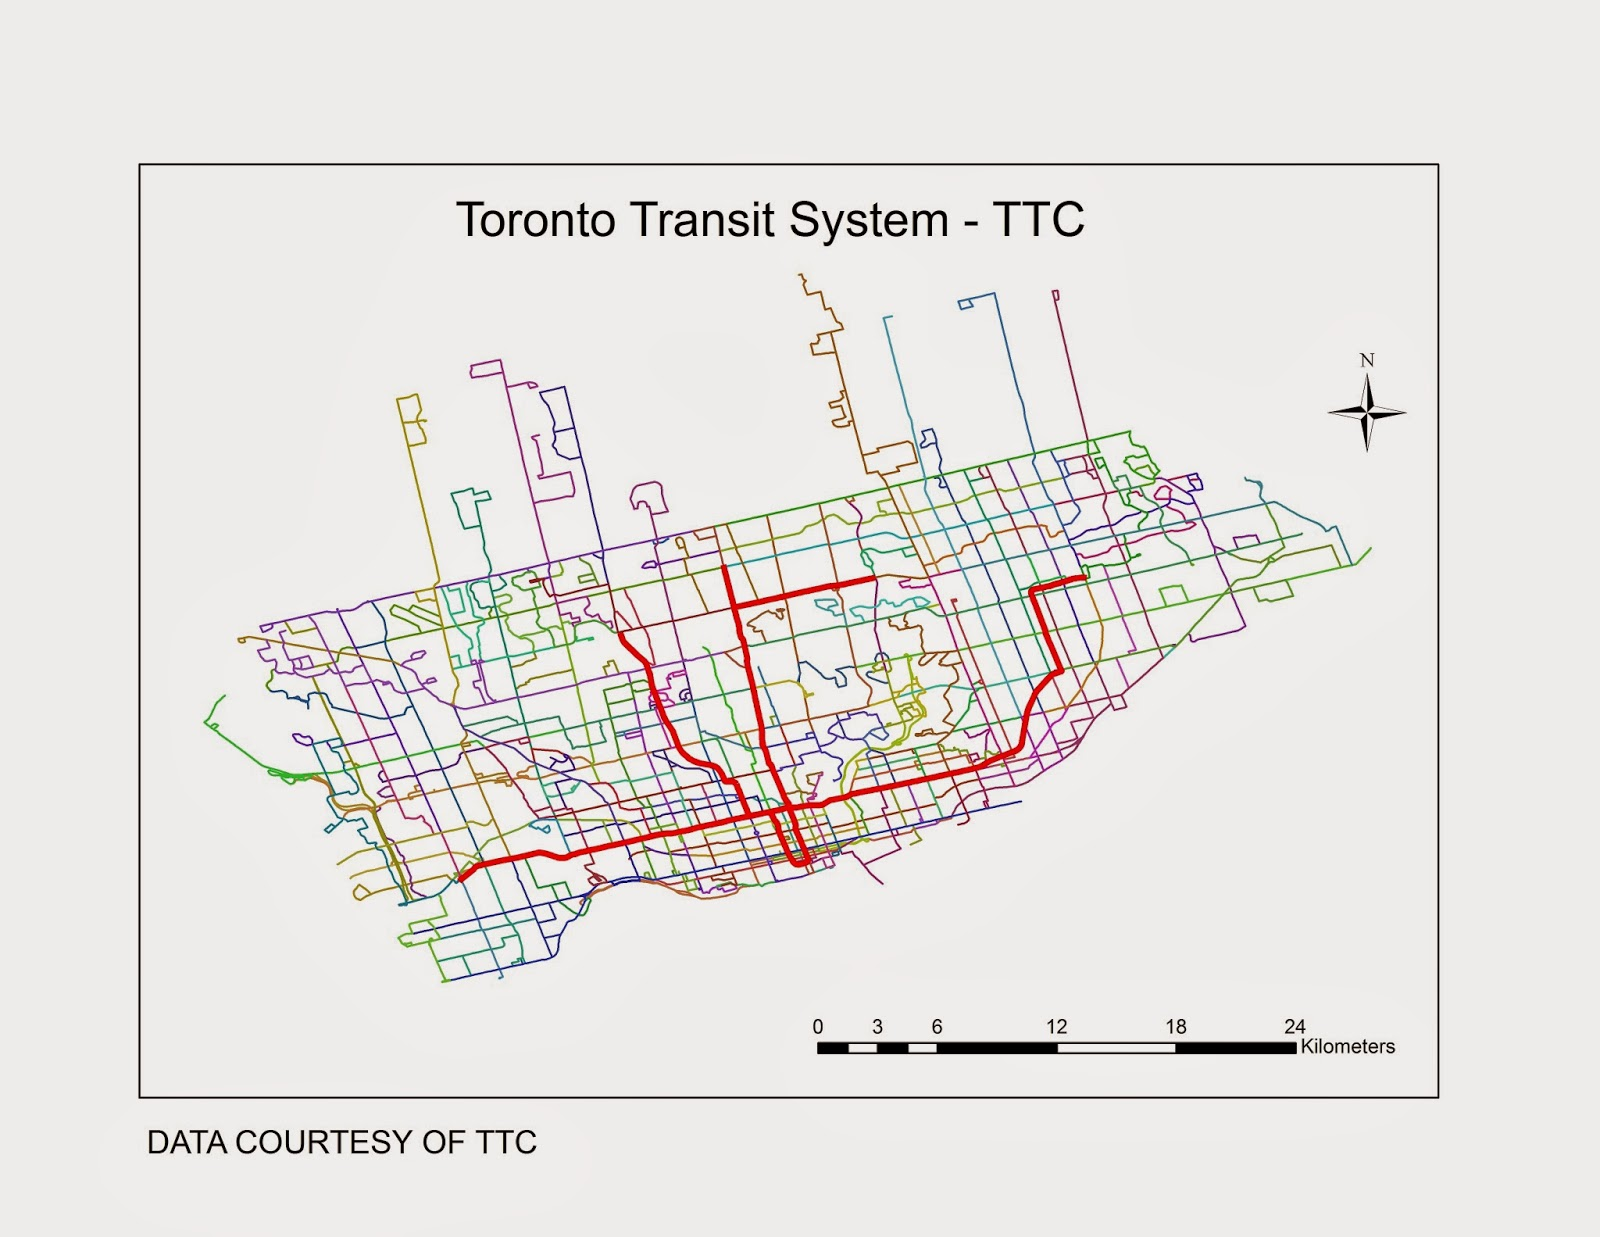 Toronto Subway Stations Map.Toronto Transit Commission Ttc Subway Bus Routes As Well As Subway Stations Geospatial Centre University Of Waterloo